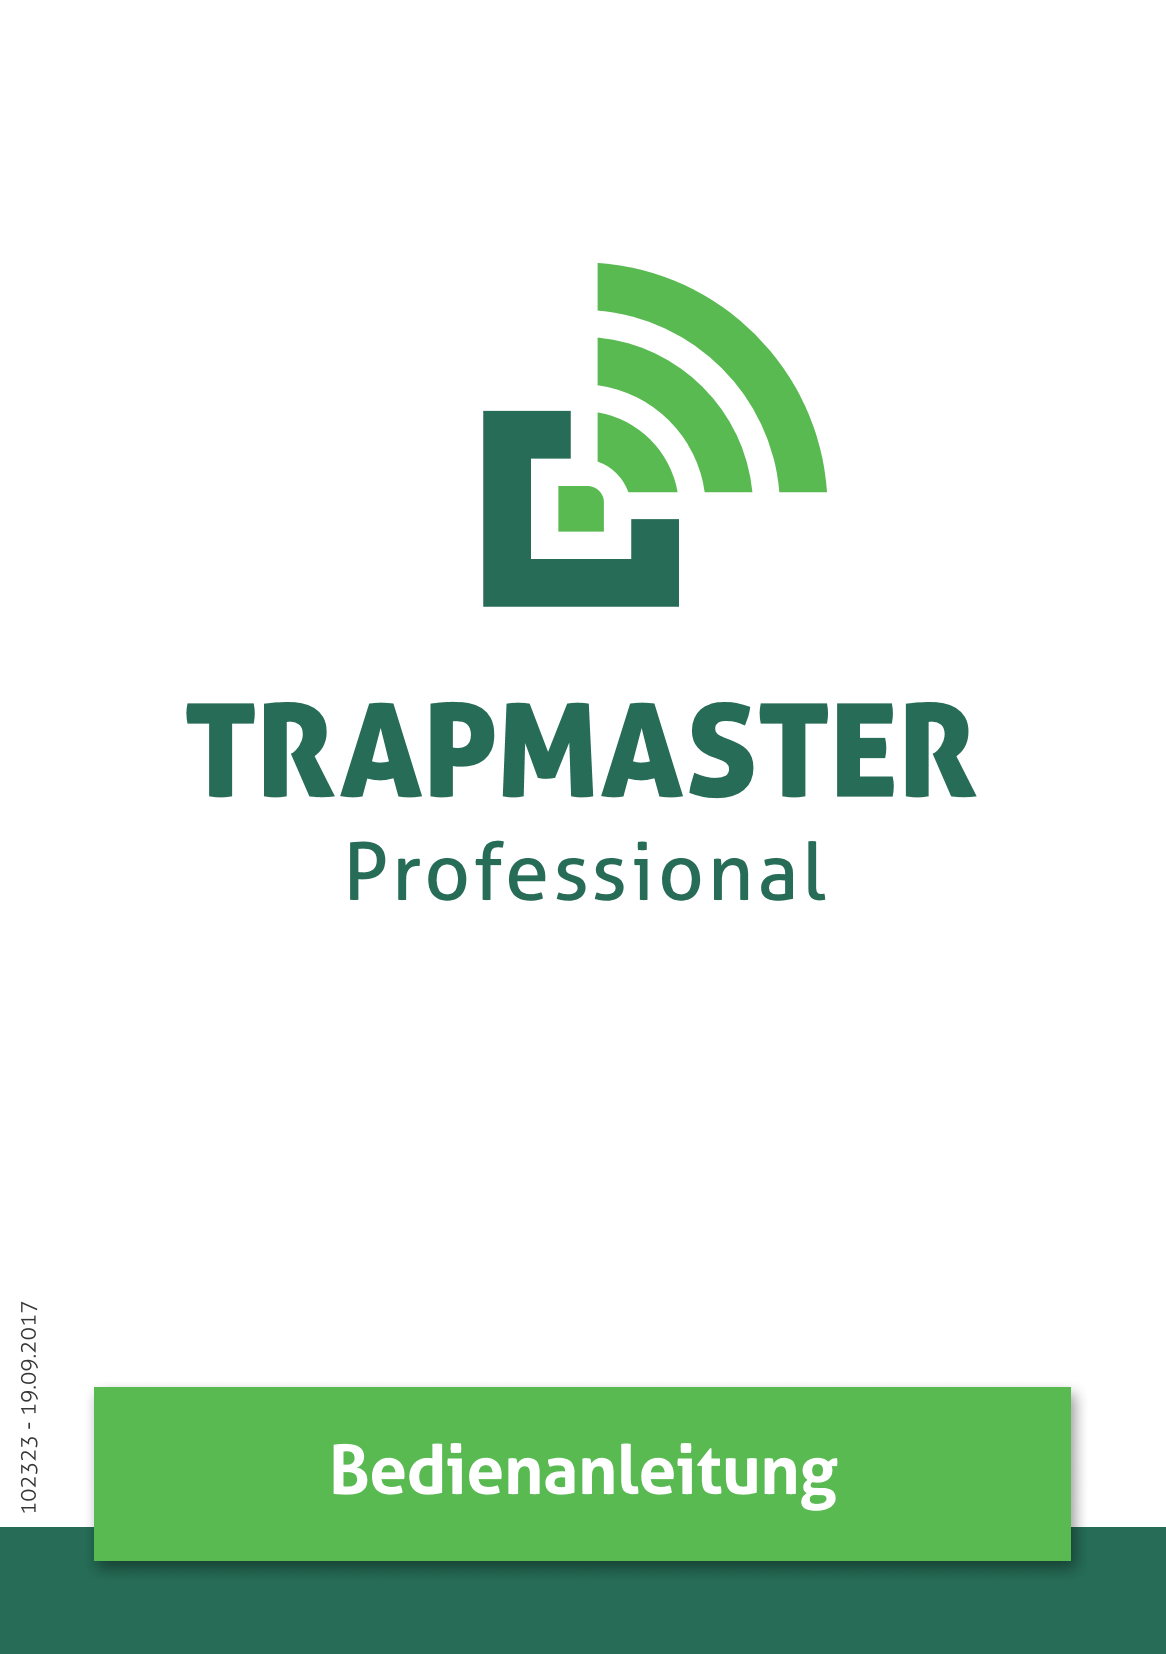 Bedienanleitung TRAPMASTER Professional